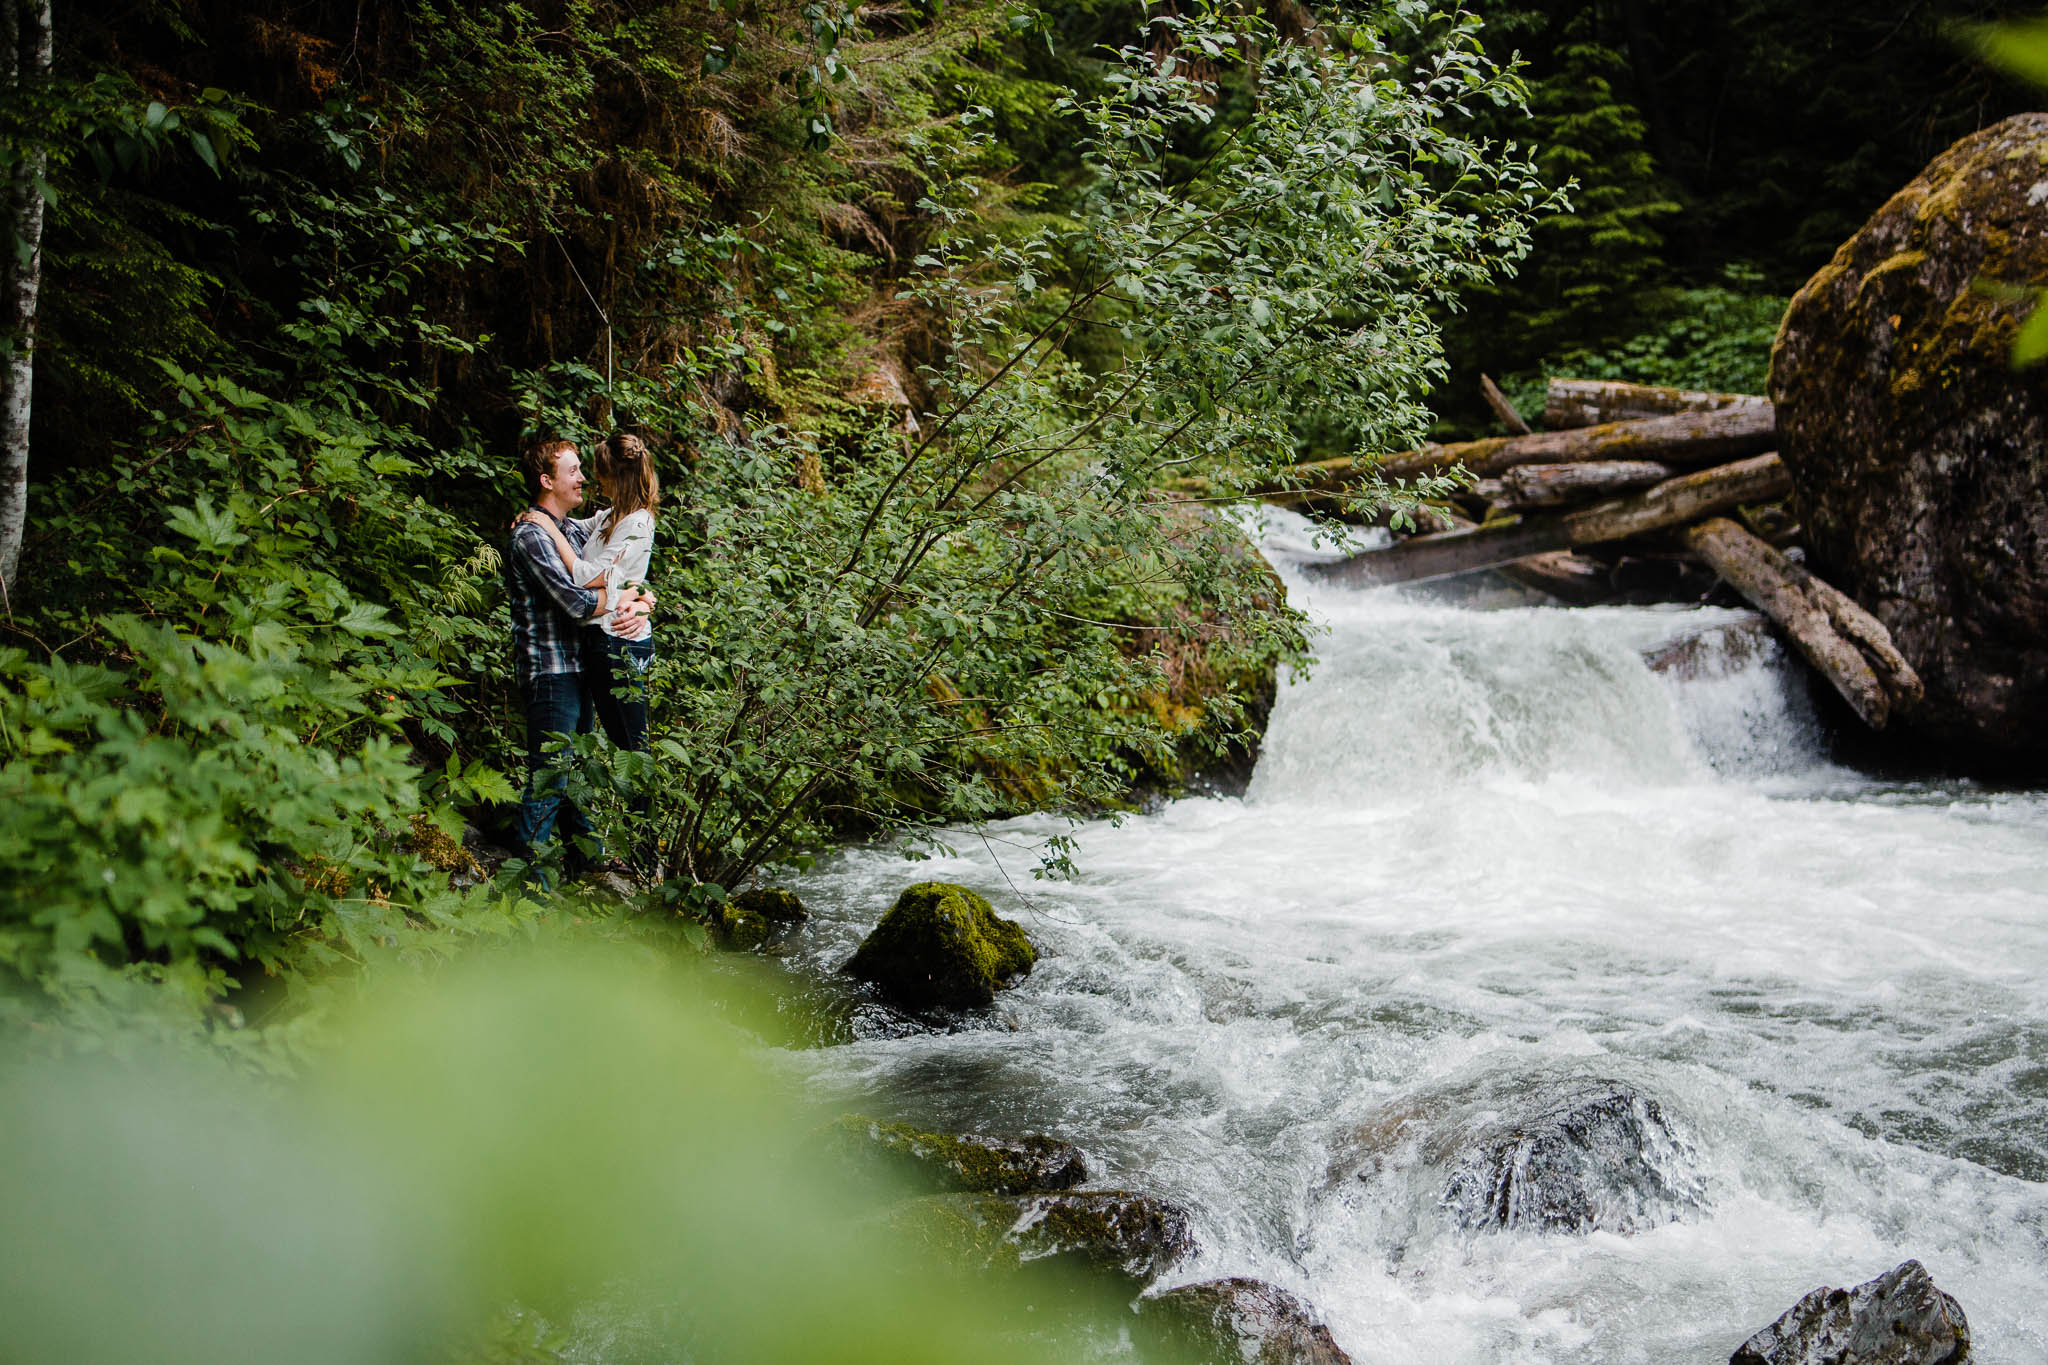 Wide angle photo of couple standing near Baby Munday Falls  by   Folley Creek near Folley Lake along Folley Service Road in Chilliwack British Columbia during outdoor engagement photography session in the mountains with Mimsical Photography.    Outdoor adventure photographer based in Langley, British Columbia. Real fun engagement photos for outdoor enthusiasts in the lower mainland. romantic pictures of couple